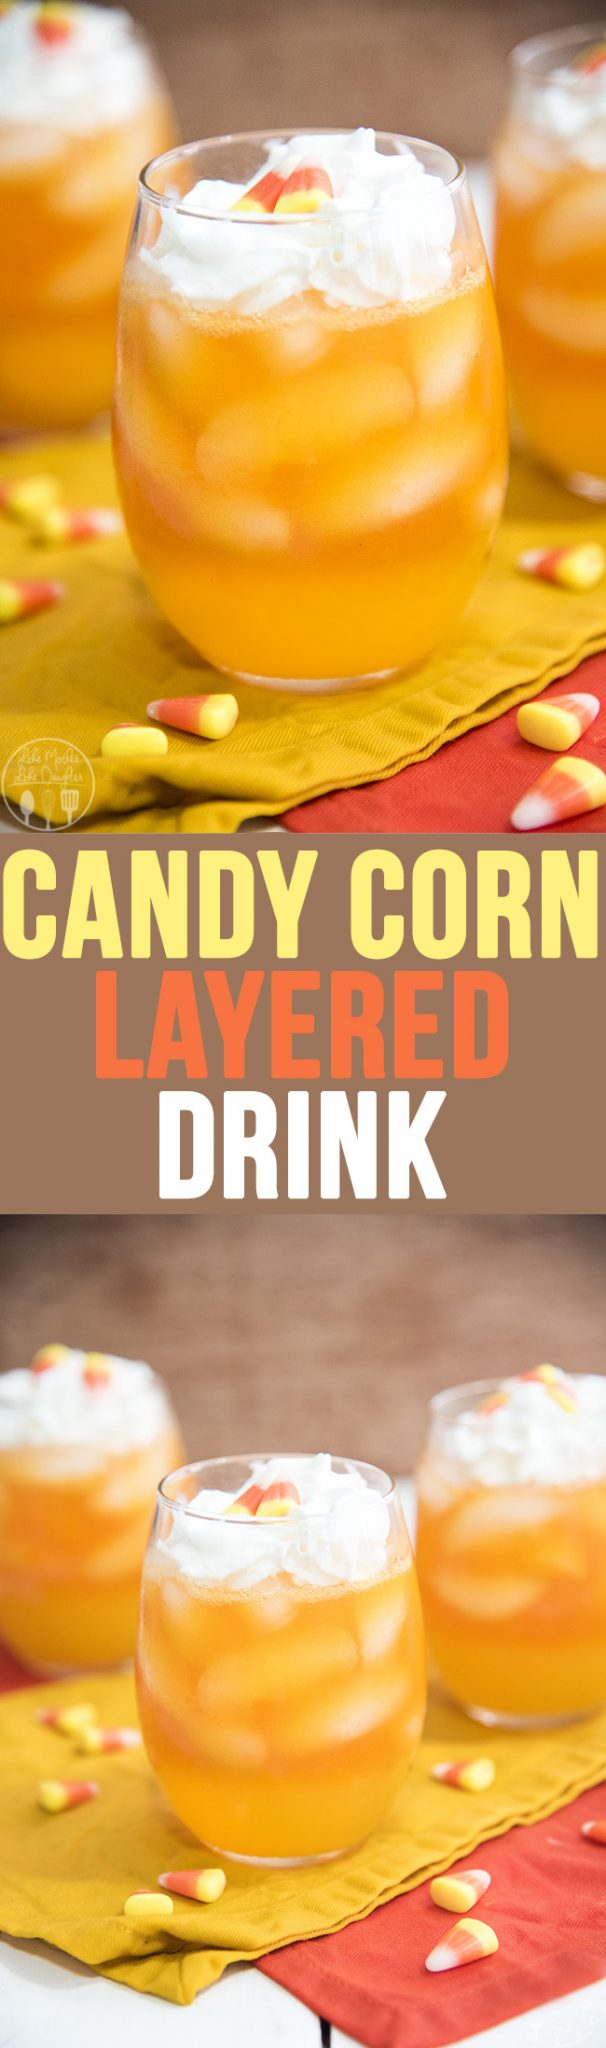 Candy Corn Layered Drinks - These layered drinks have the colors of candy corn, with a yellow, orange and white layer and are perfectly festive and fun for Halloween!